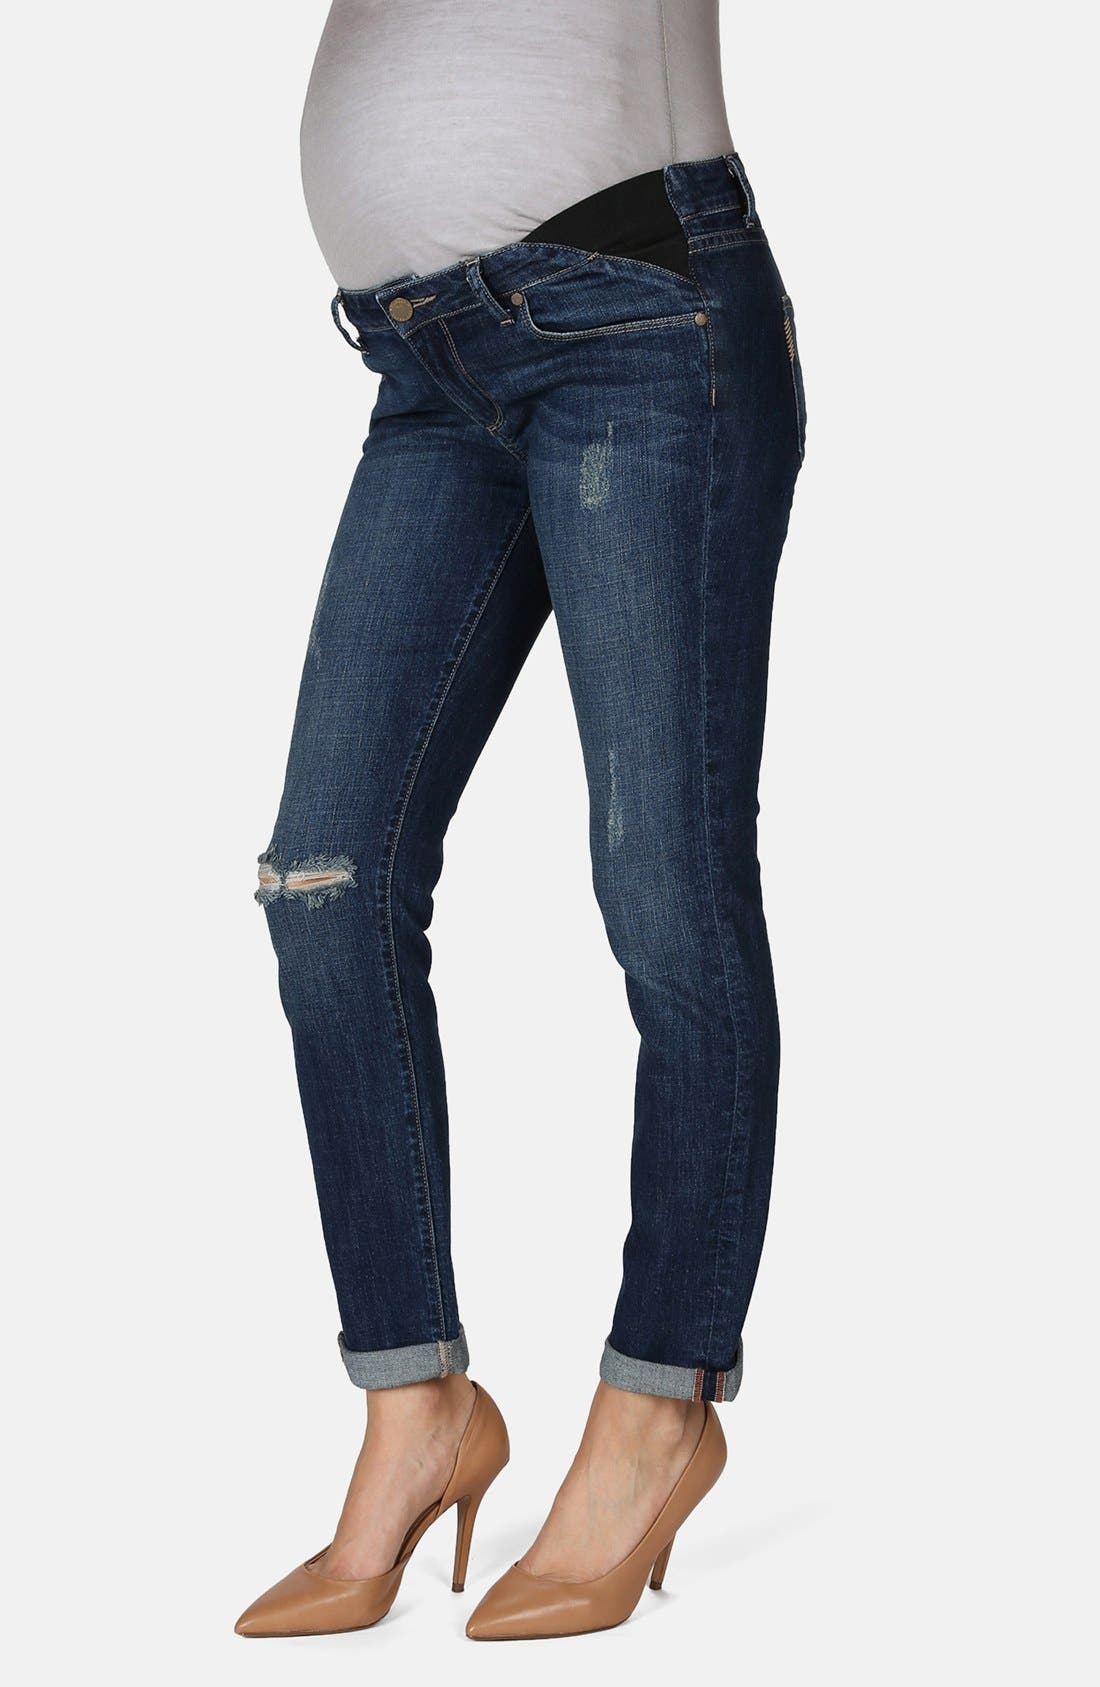 Main Image - Paige Denim 'Jimmy Jimmy' Skinny Boyfriend Maternity Jeans (Tawni Destruction)